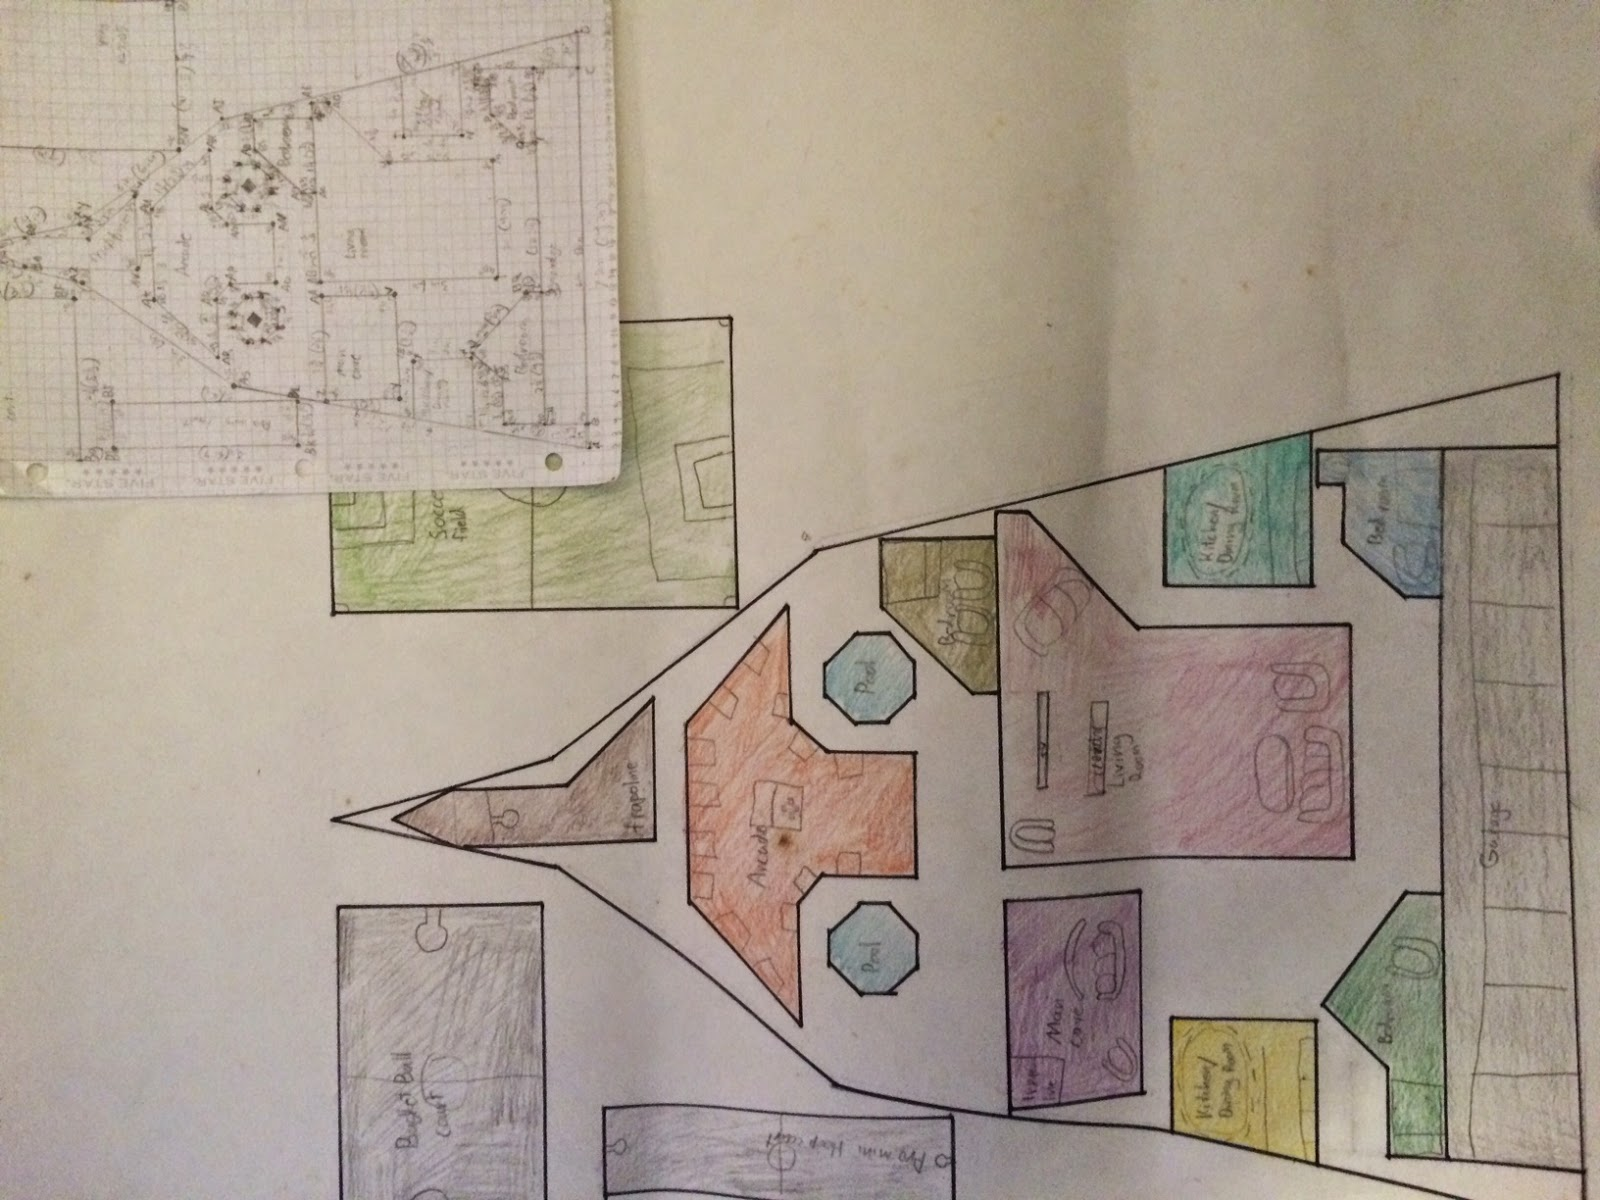 Middle school math man blueprint project for upper elementary math creative designs my students came up with this year some of my students really spent a lot of time outside of class making their projects look great malvernweather Image collections